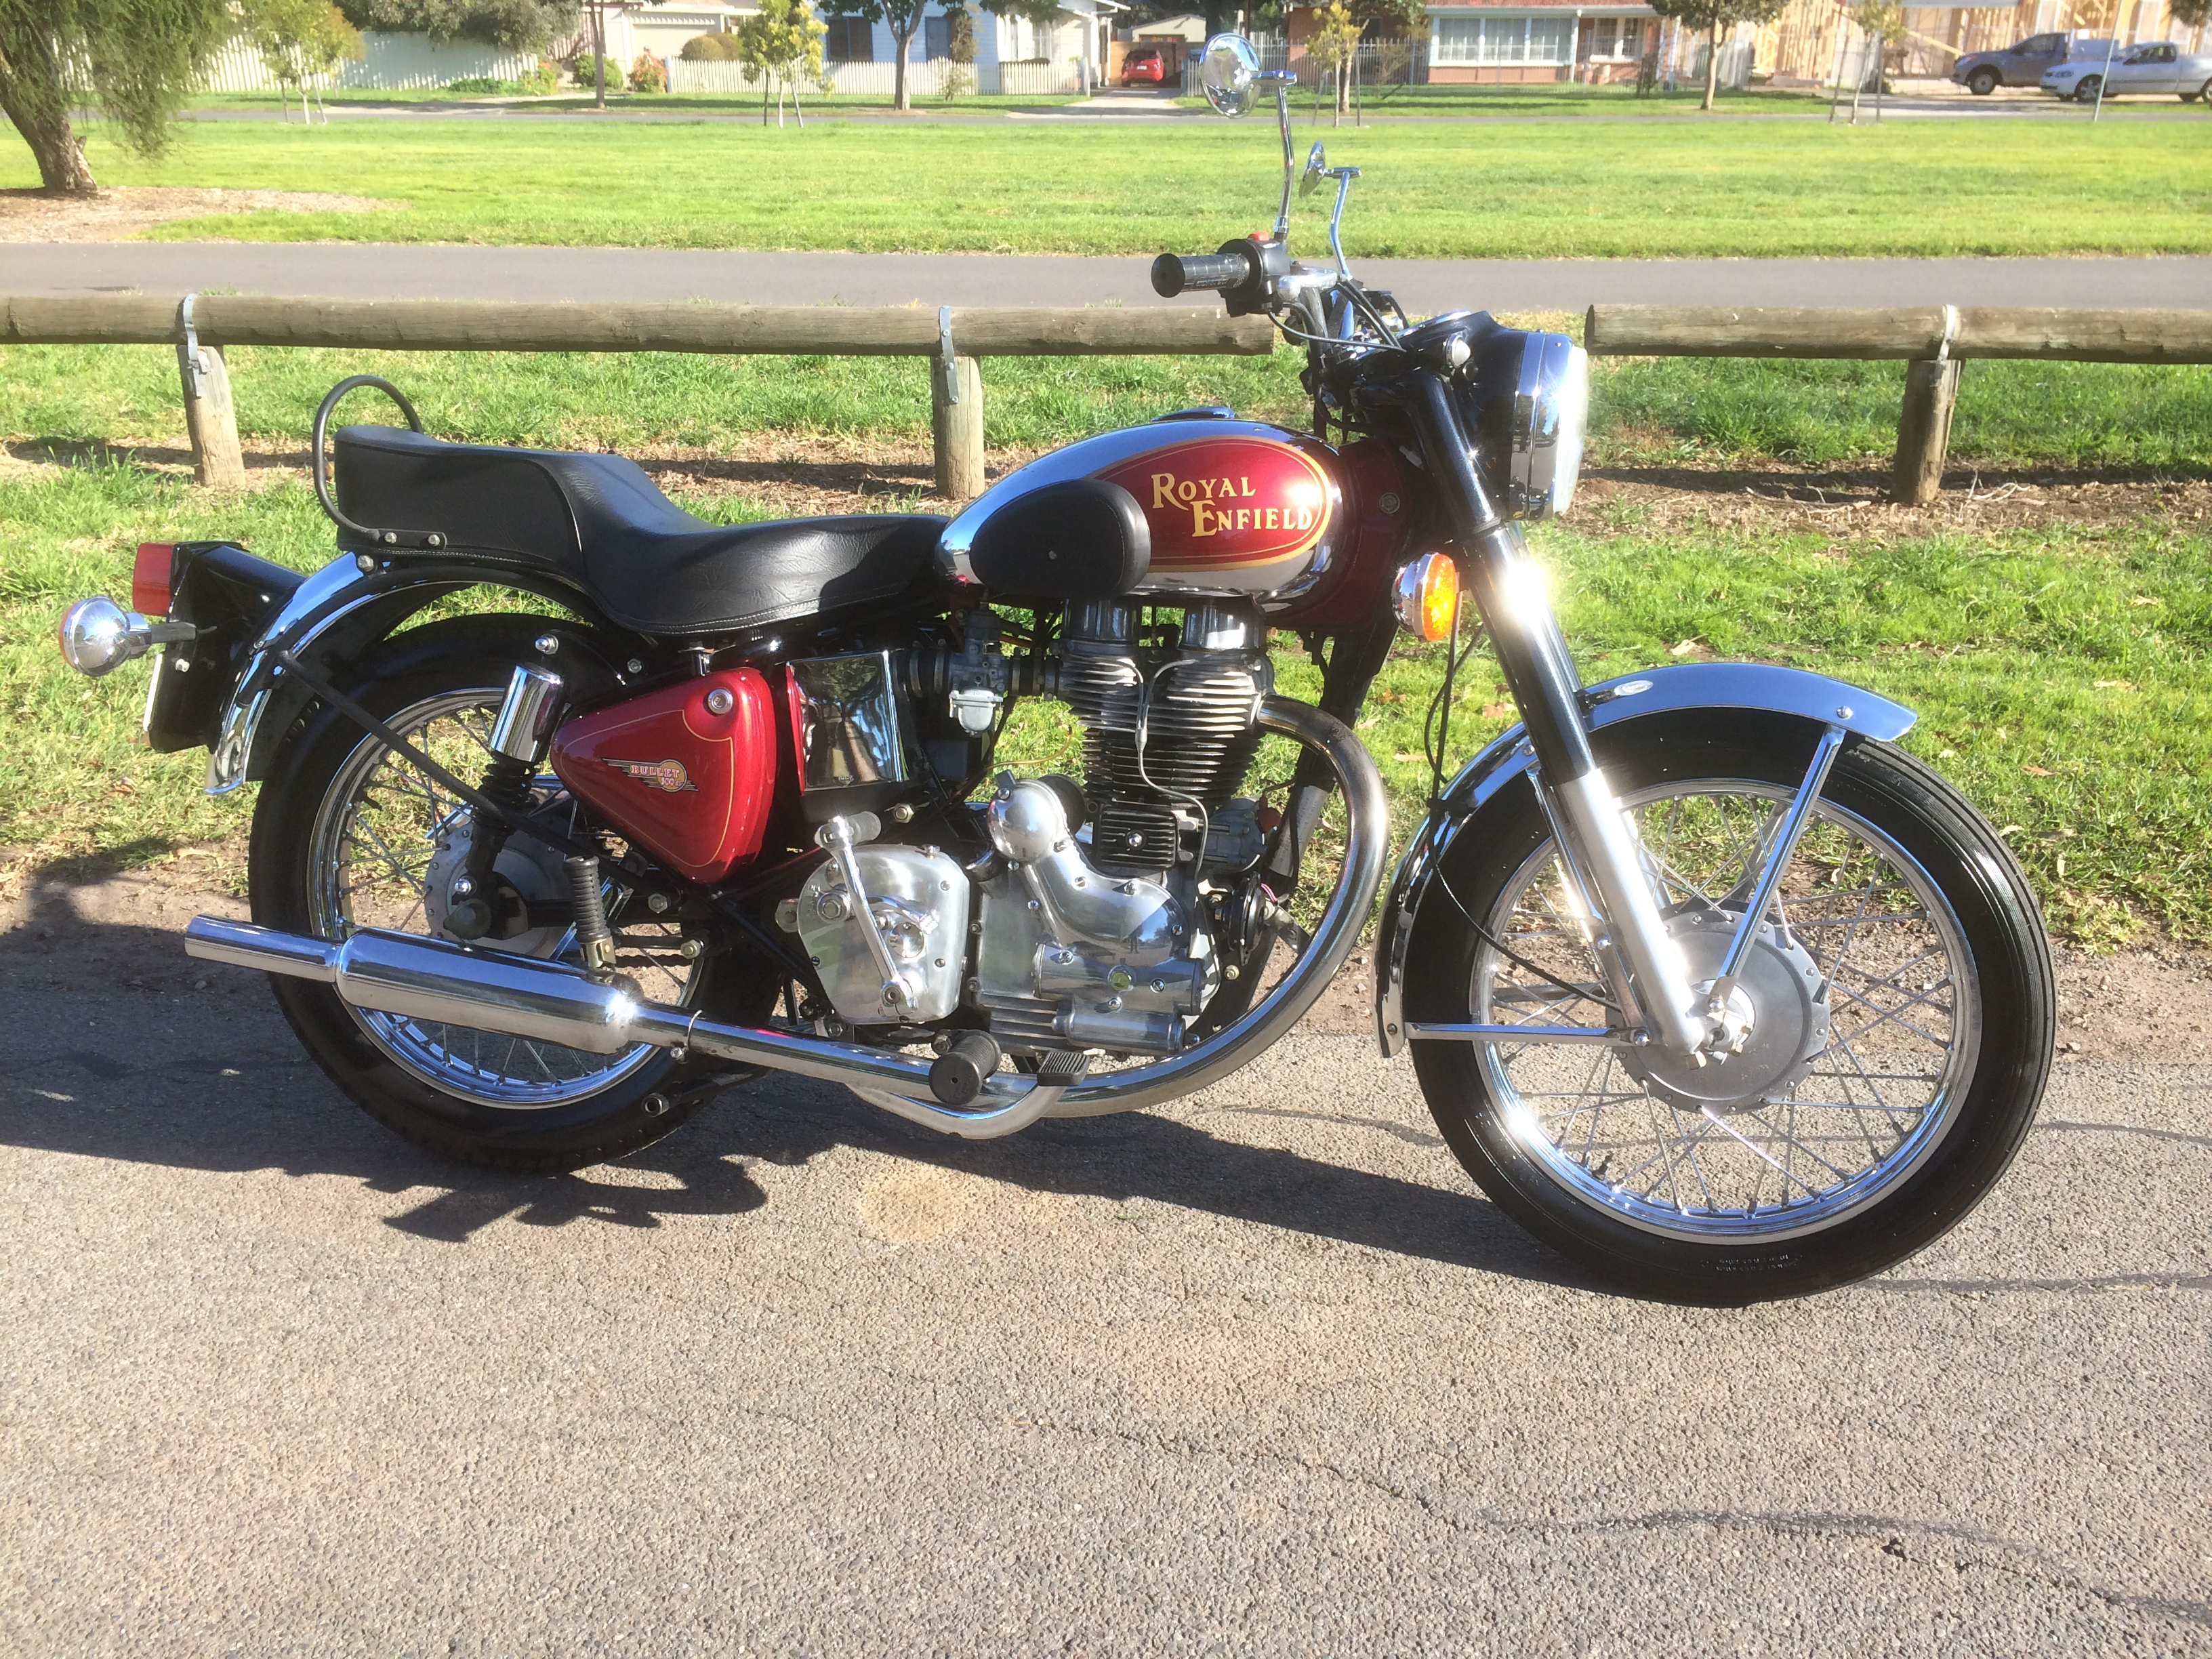 Royal Enfield Bullet 350 Army 2001 images #123099